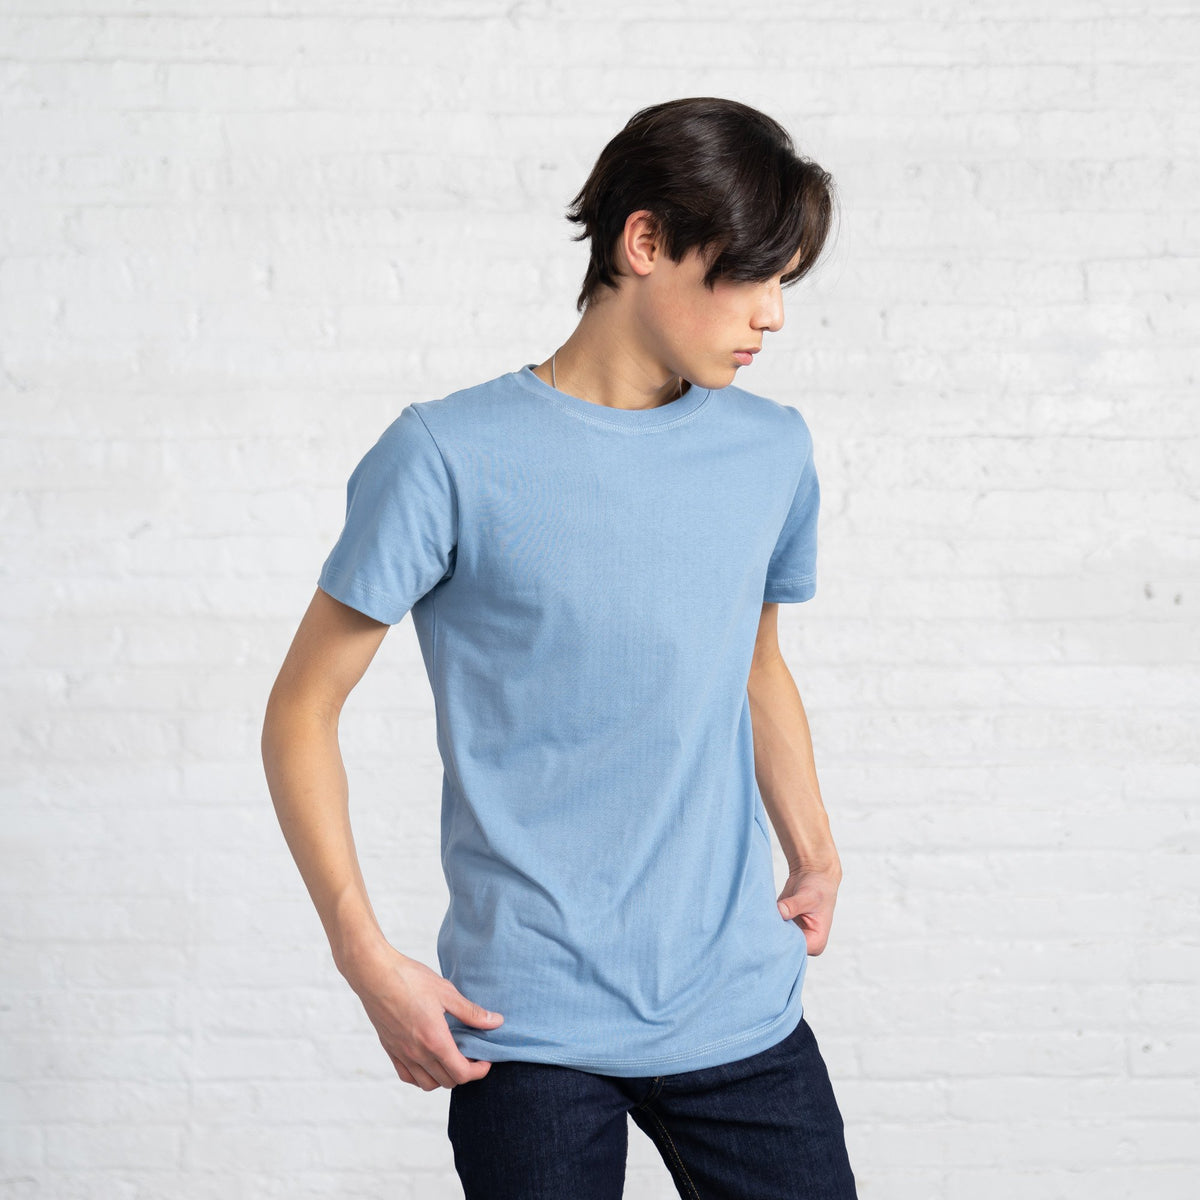 Fitted Color:Light Blue Combed Cotton Men's T-shirts